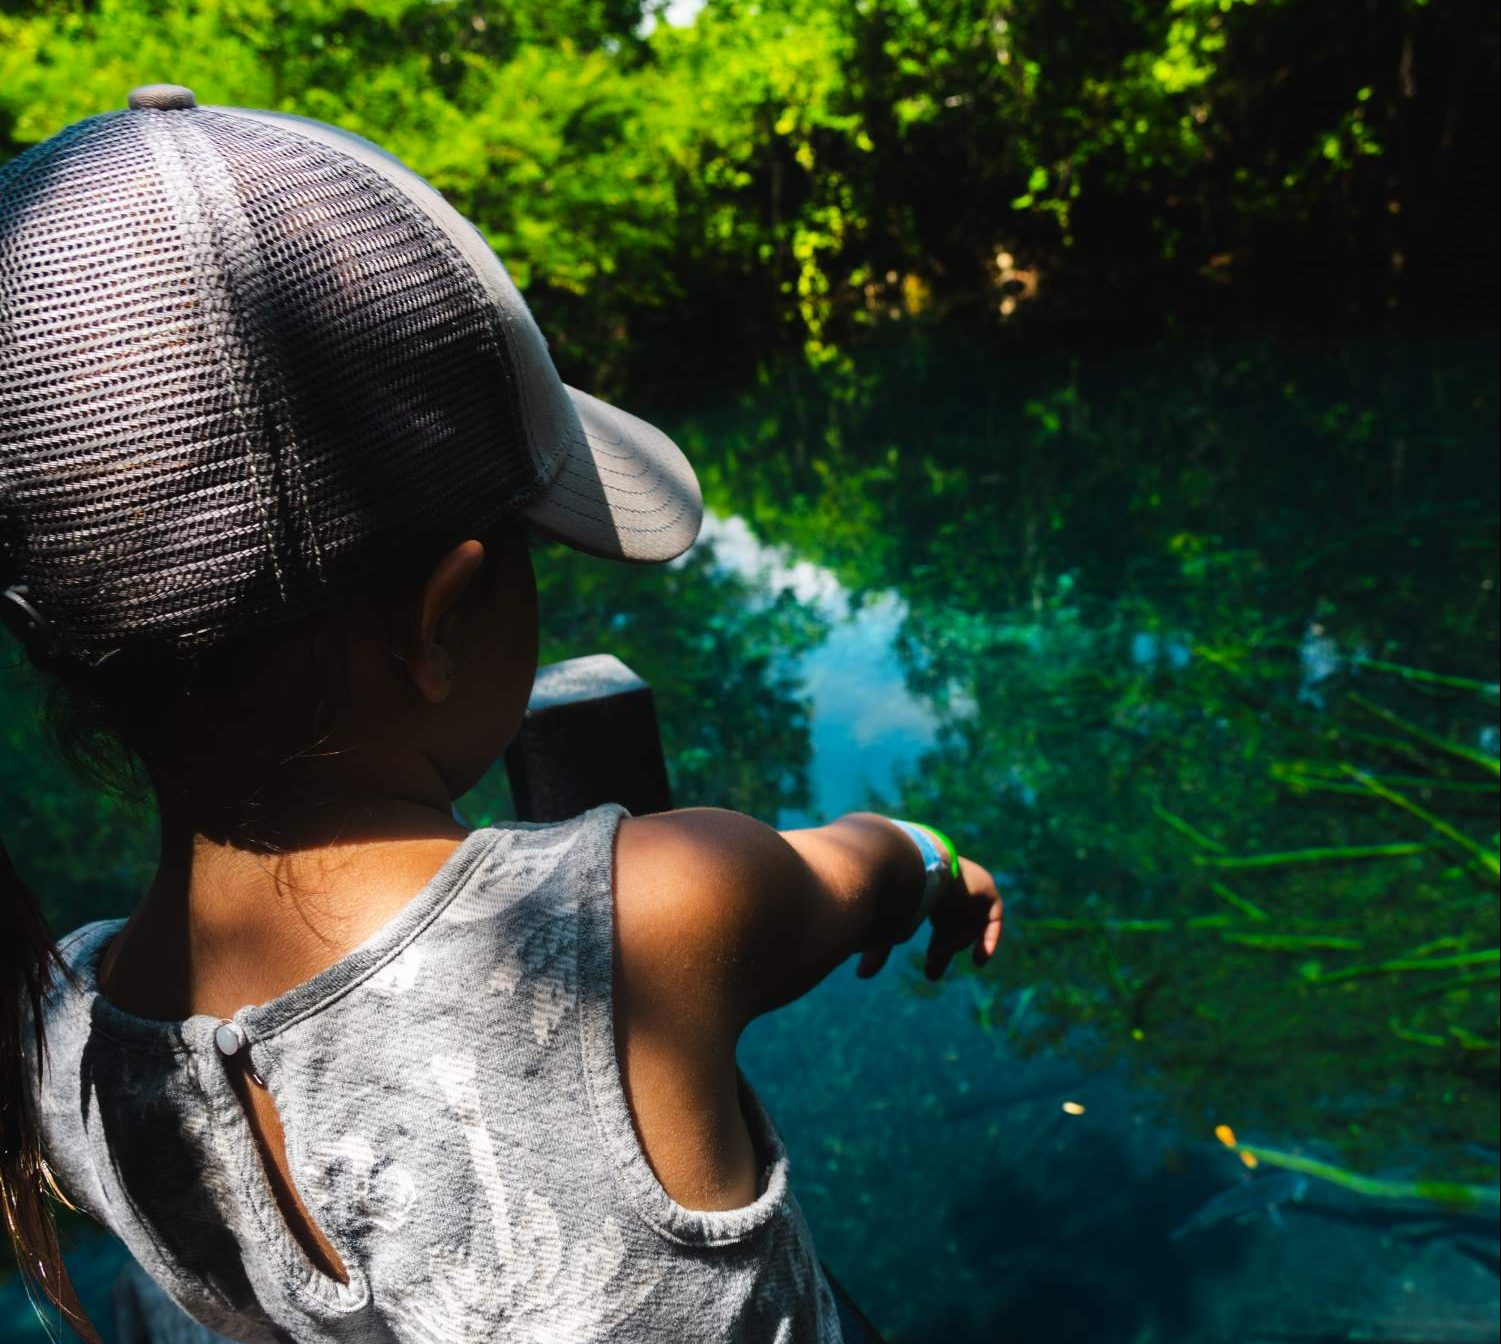 Kids at the Indigenous Eyes Ecological Park and Reserve in Dominican Republic